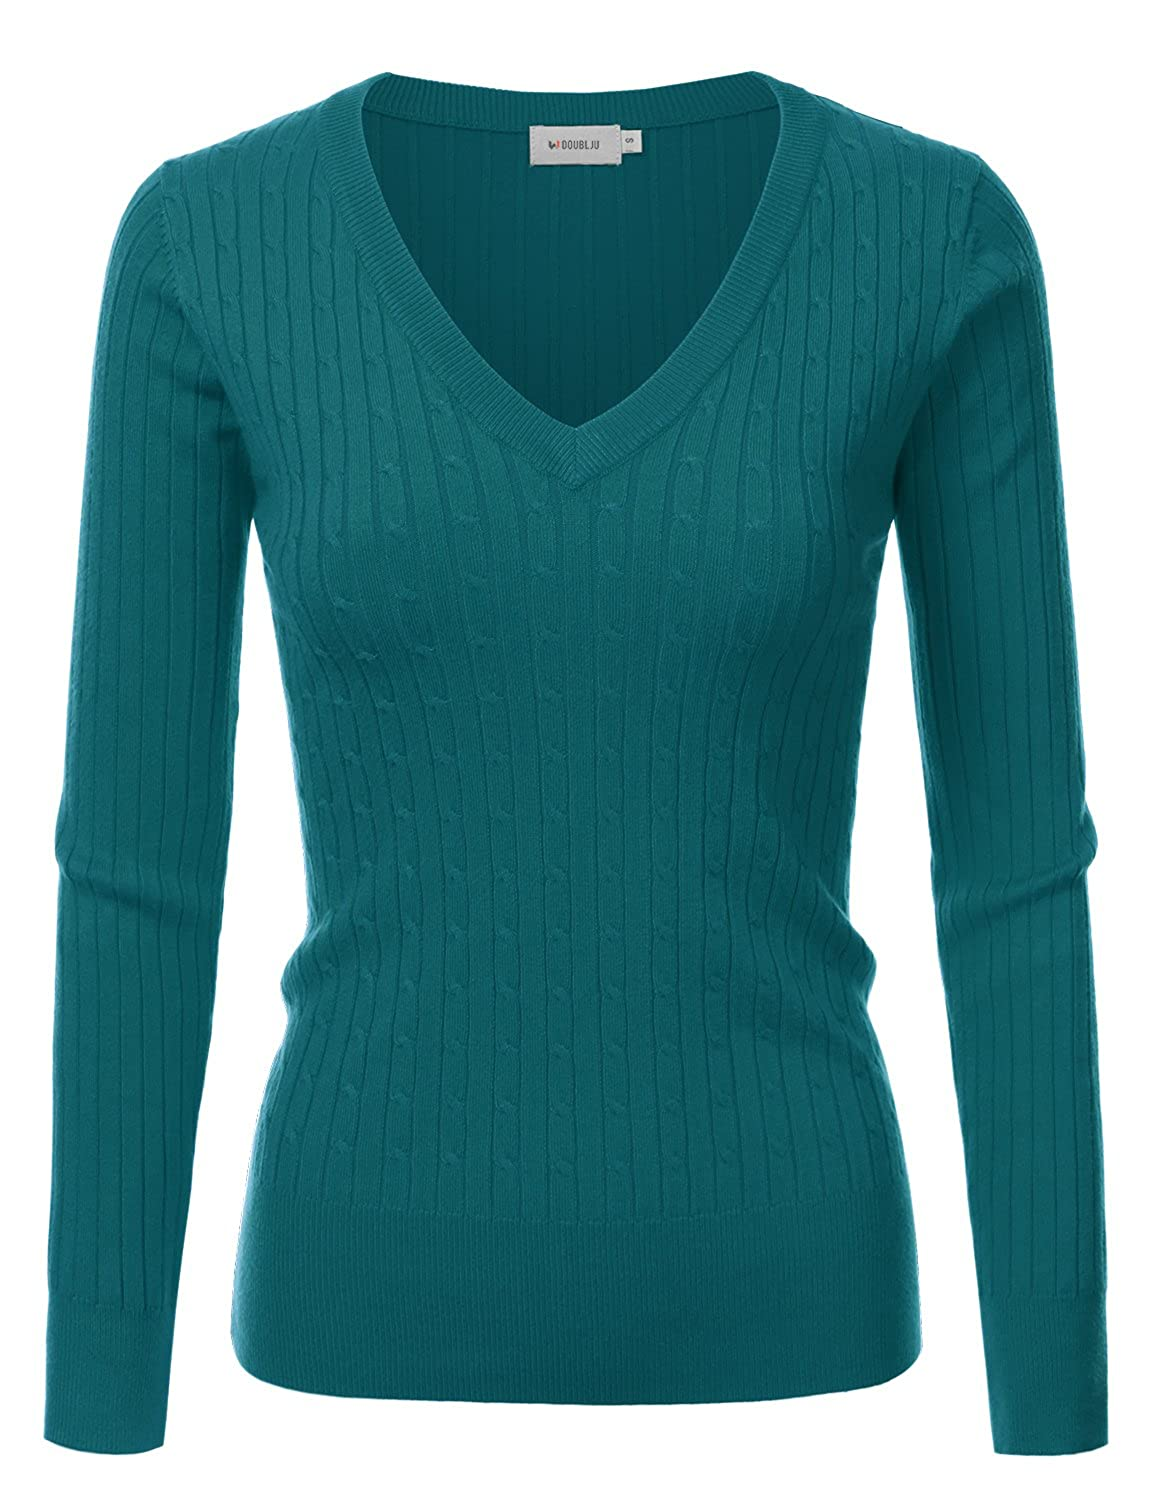 Awoswl0220_darkgreen Doublju Slim Fit Twisted Cable Knit VNeck Sweater For Women